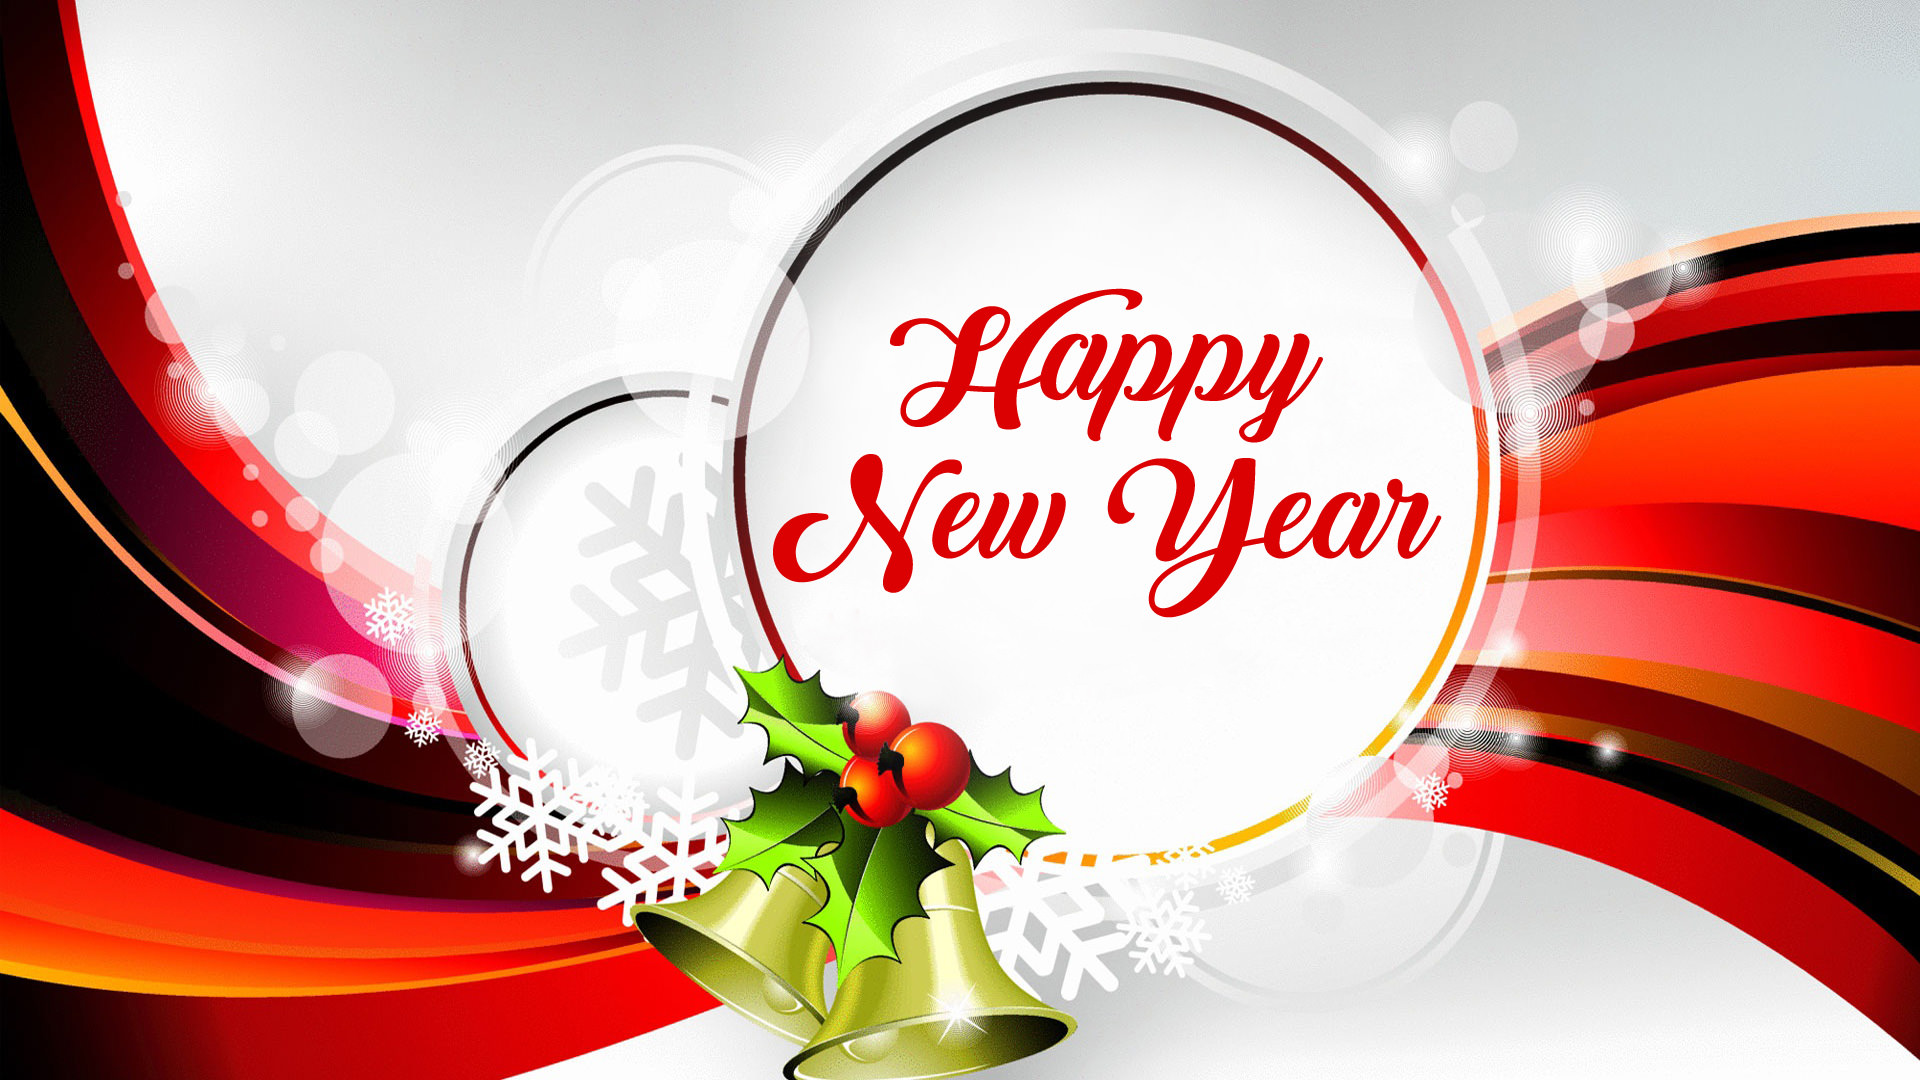 Download 3d Wallpapers For Pc Desktop Special Happy New Year 2018 Wallpaper Hd Greetings